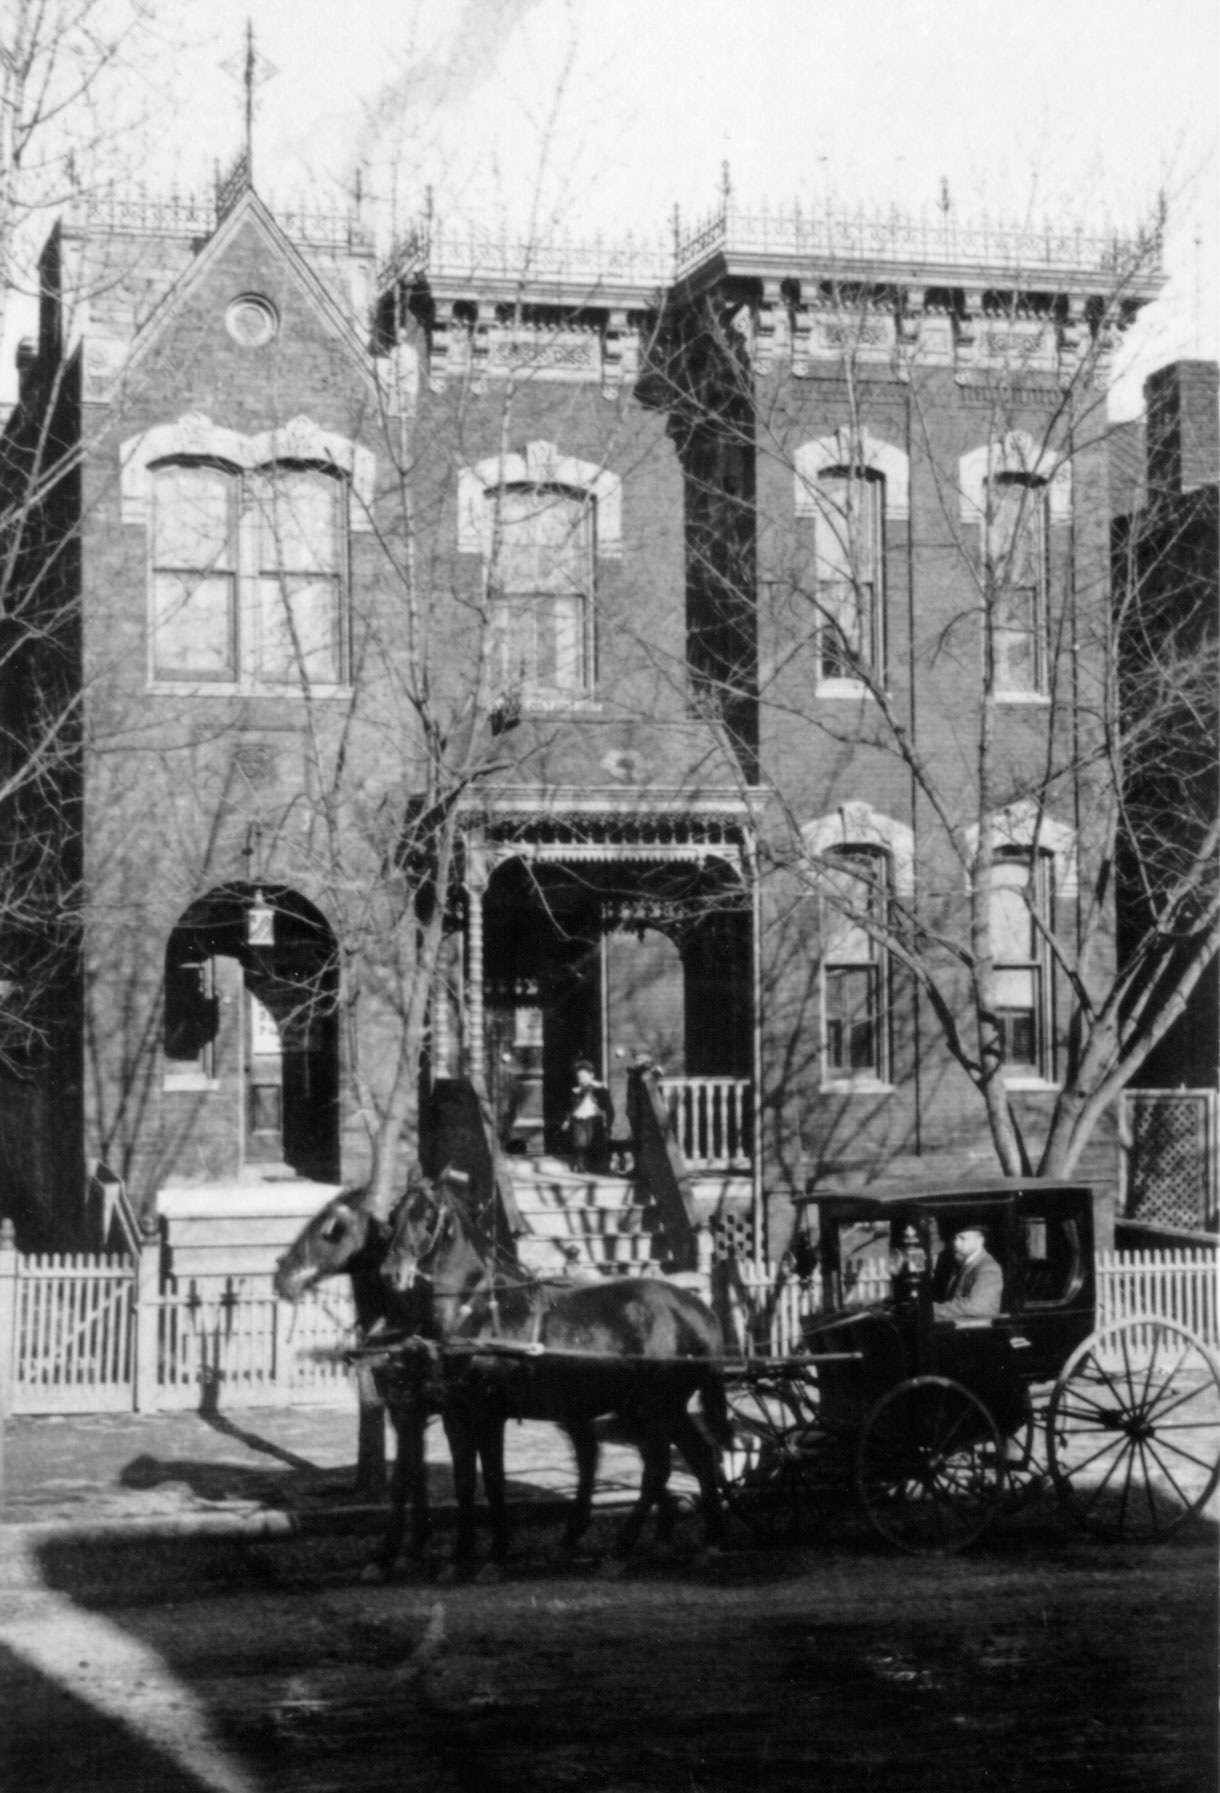 undated photo, possibly 1910s-1920s of the Walker Home.